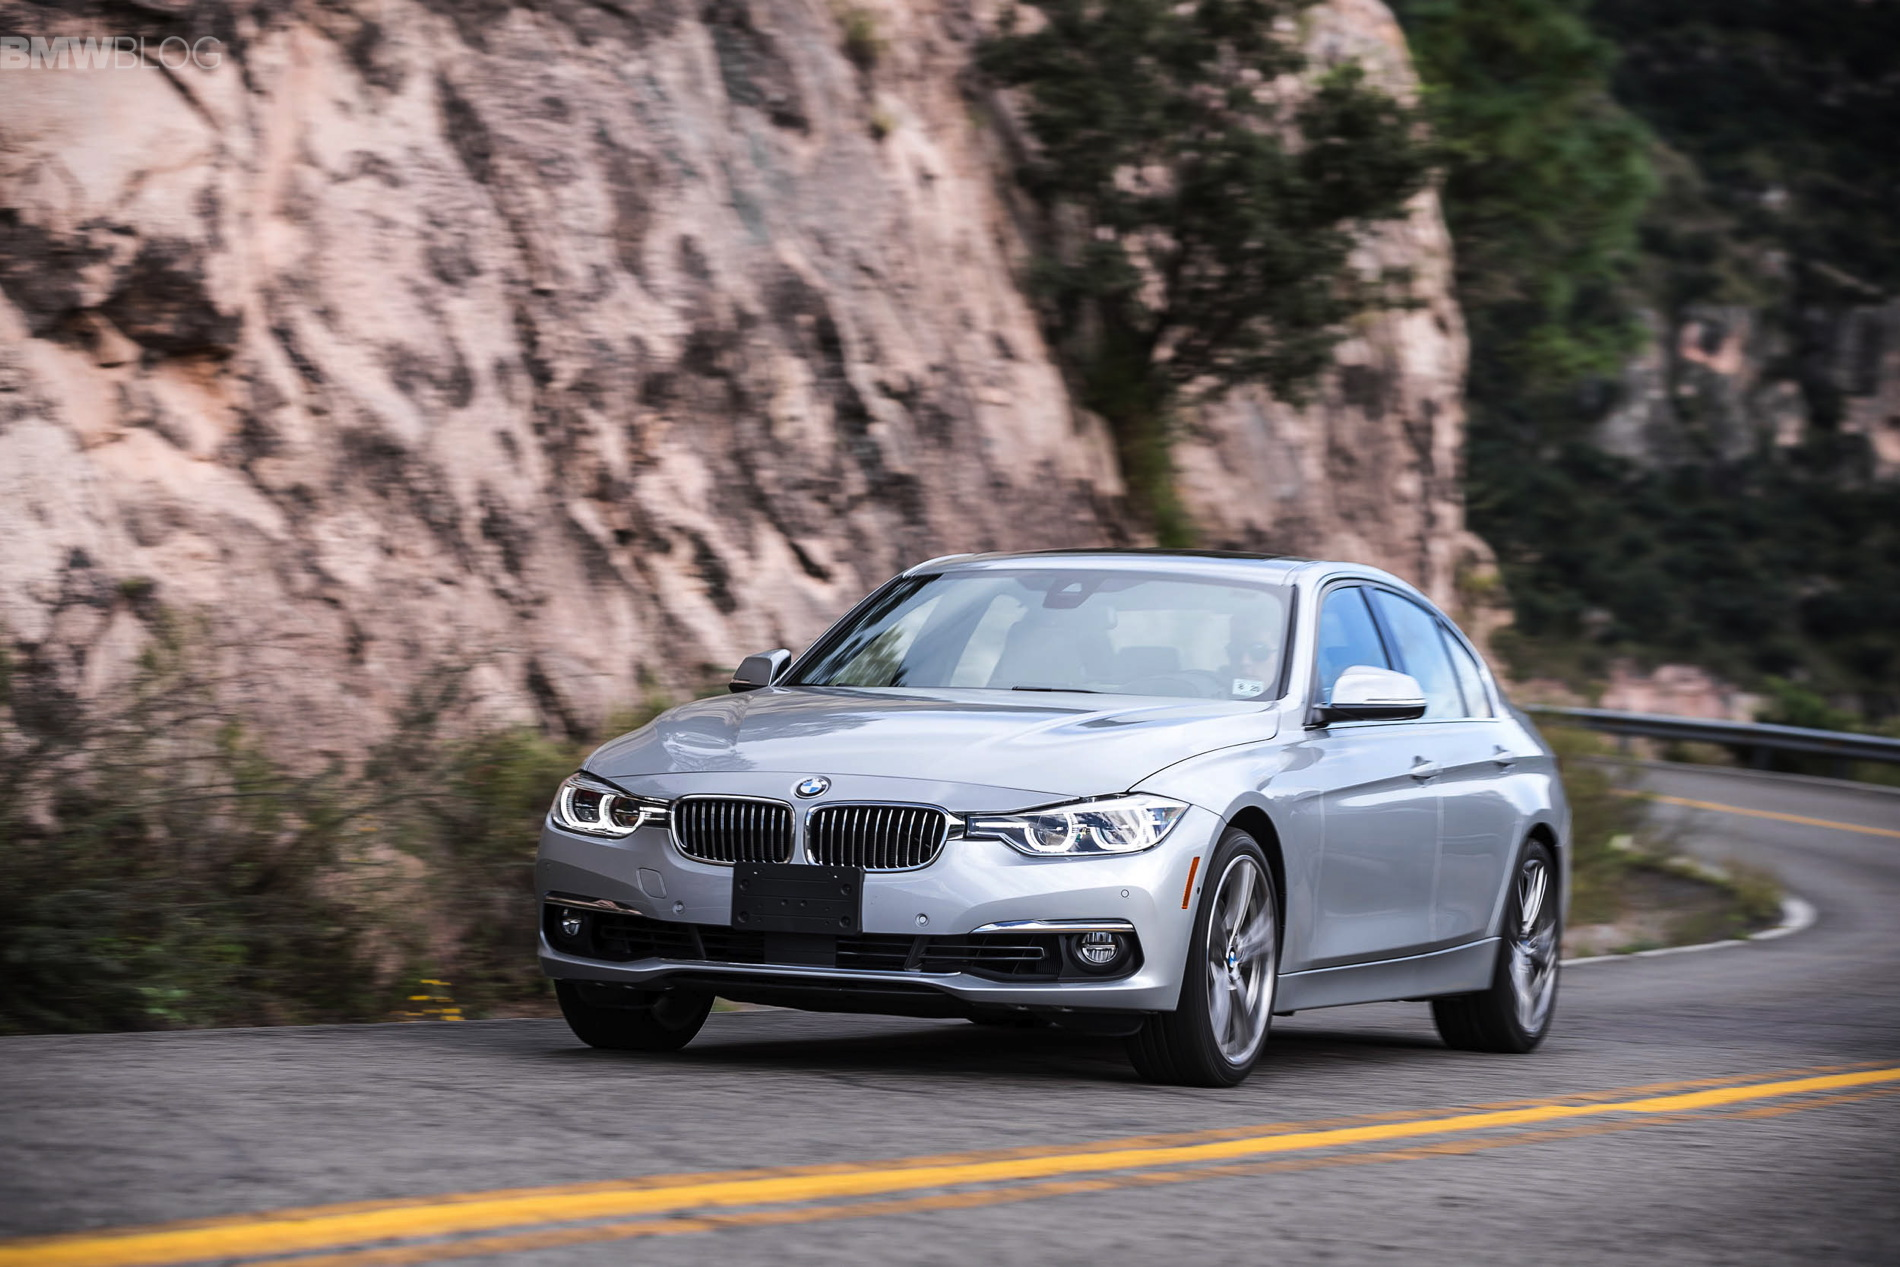 2016 bmw 340i test drive images 50